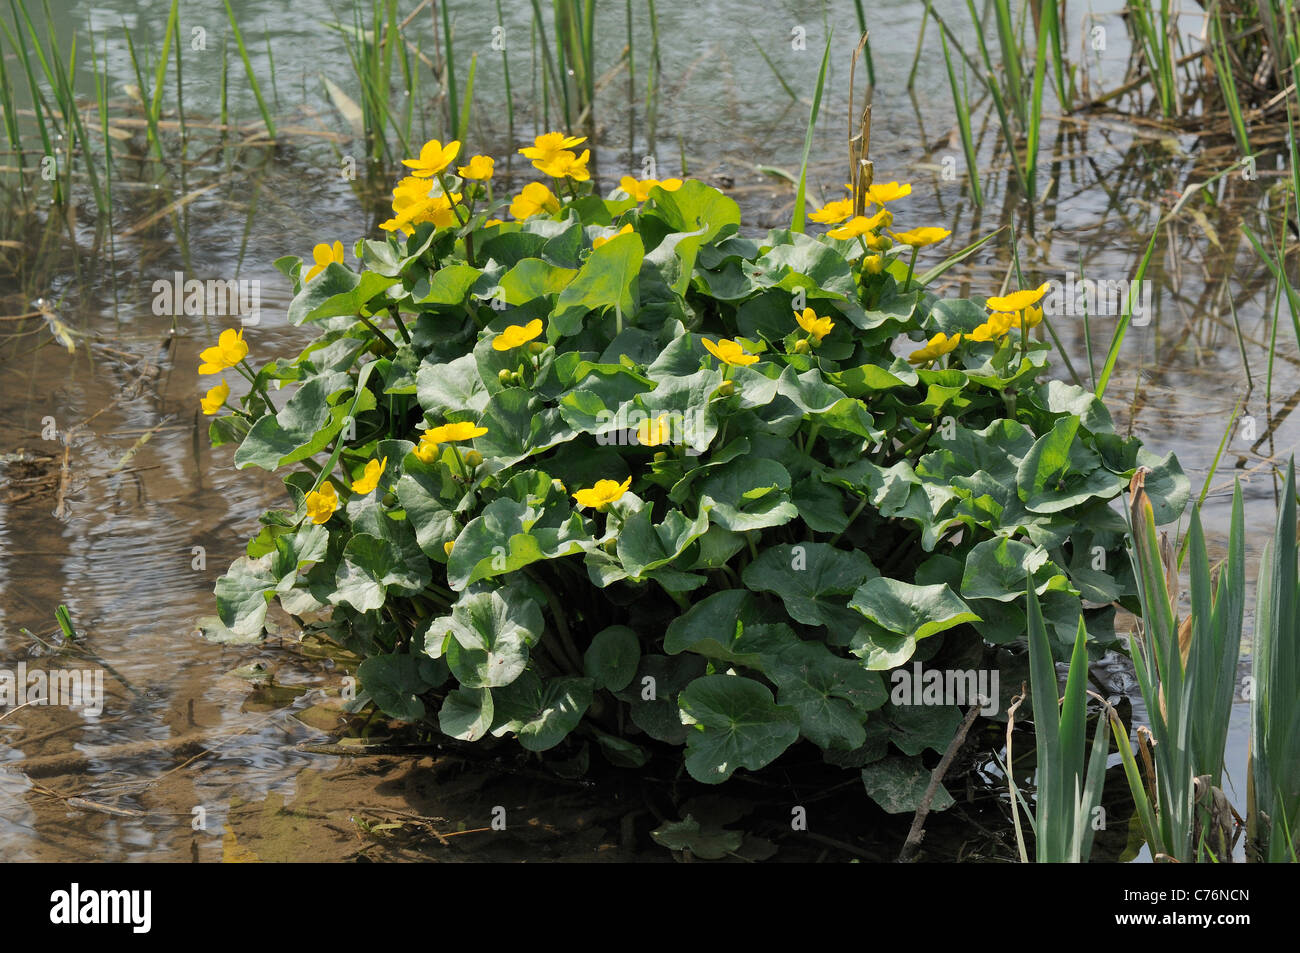 Marsh marigold or King cup (Caltha palustris) clump flowering in a freshwater stream, spring, Wiltshire, UK, April. Stock Photo